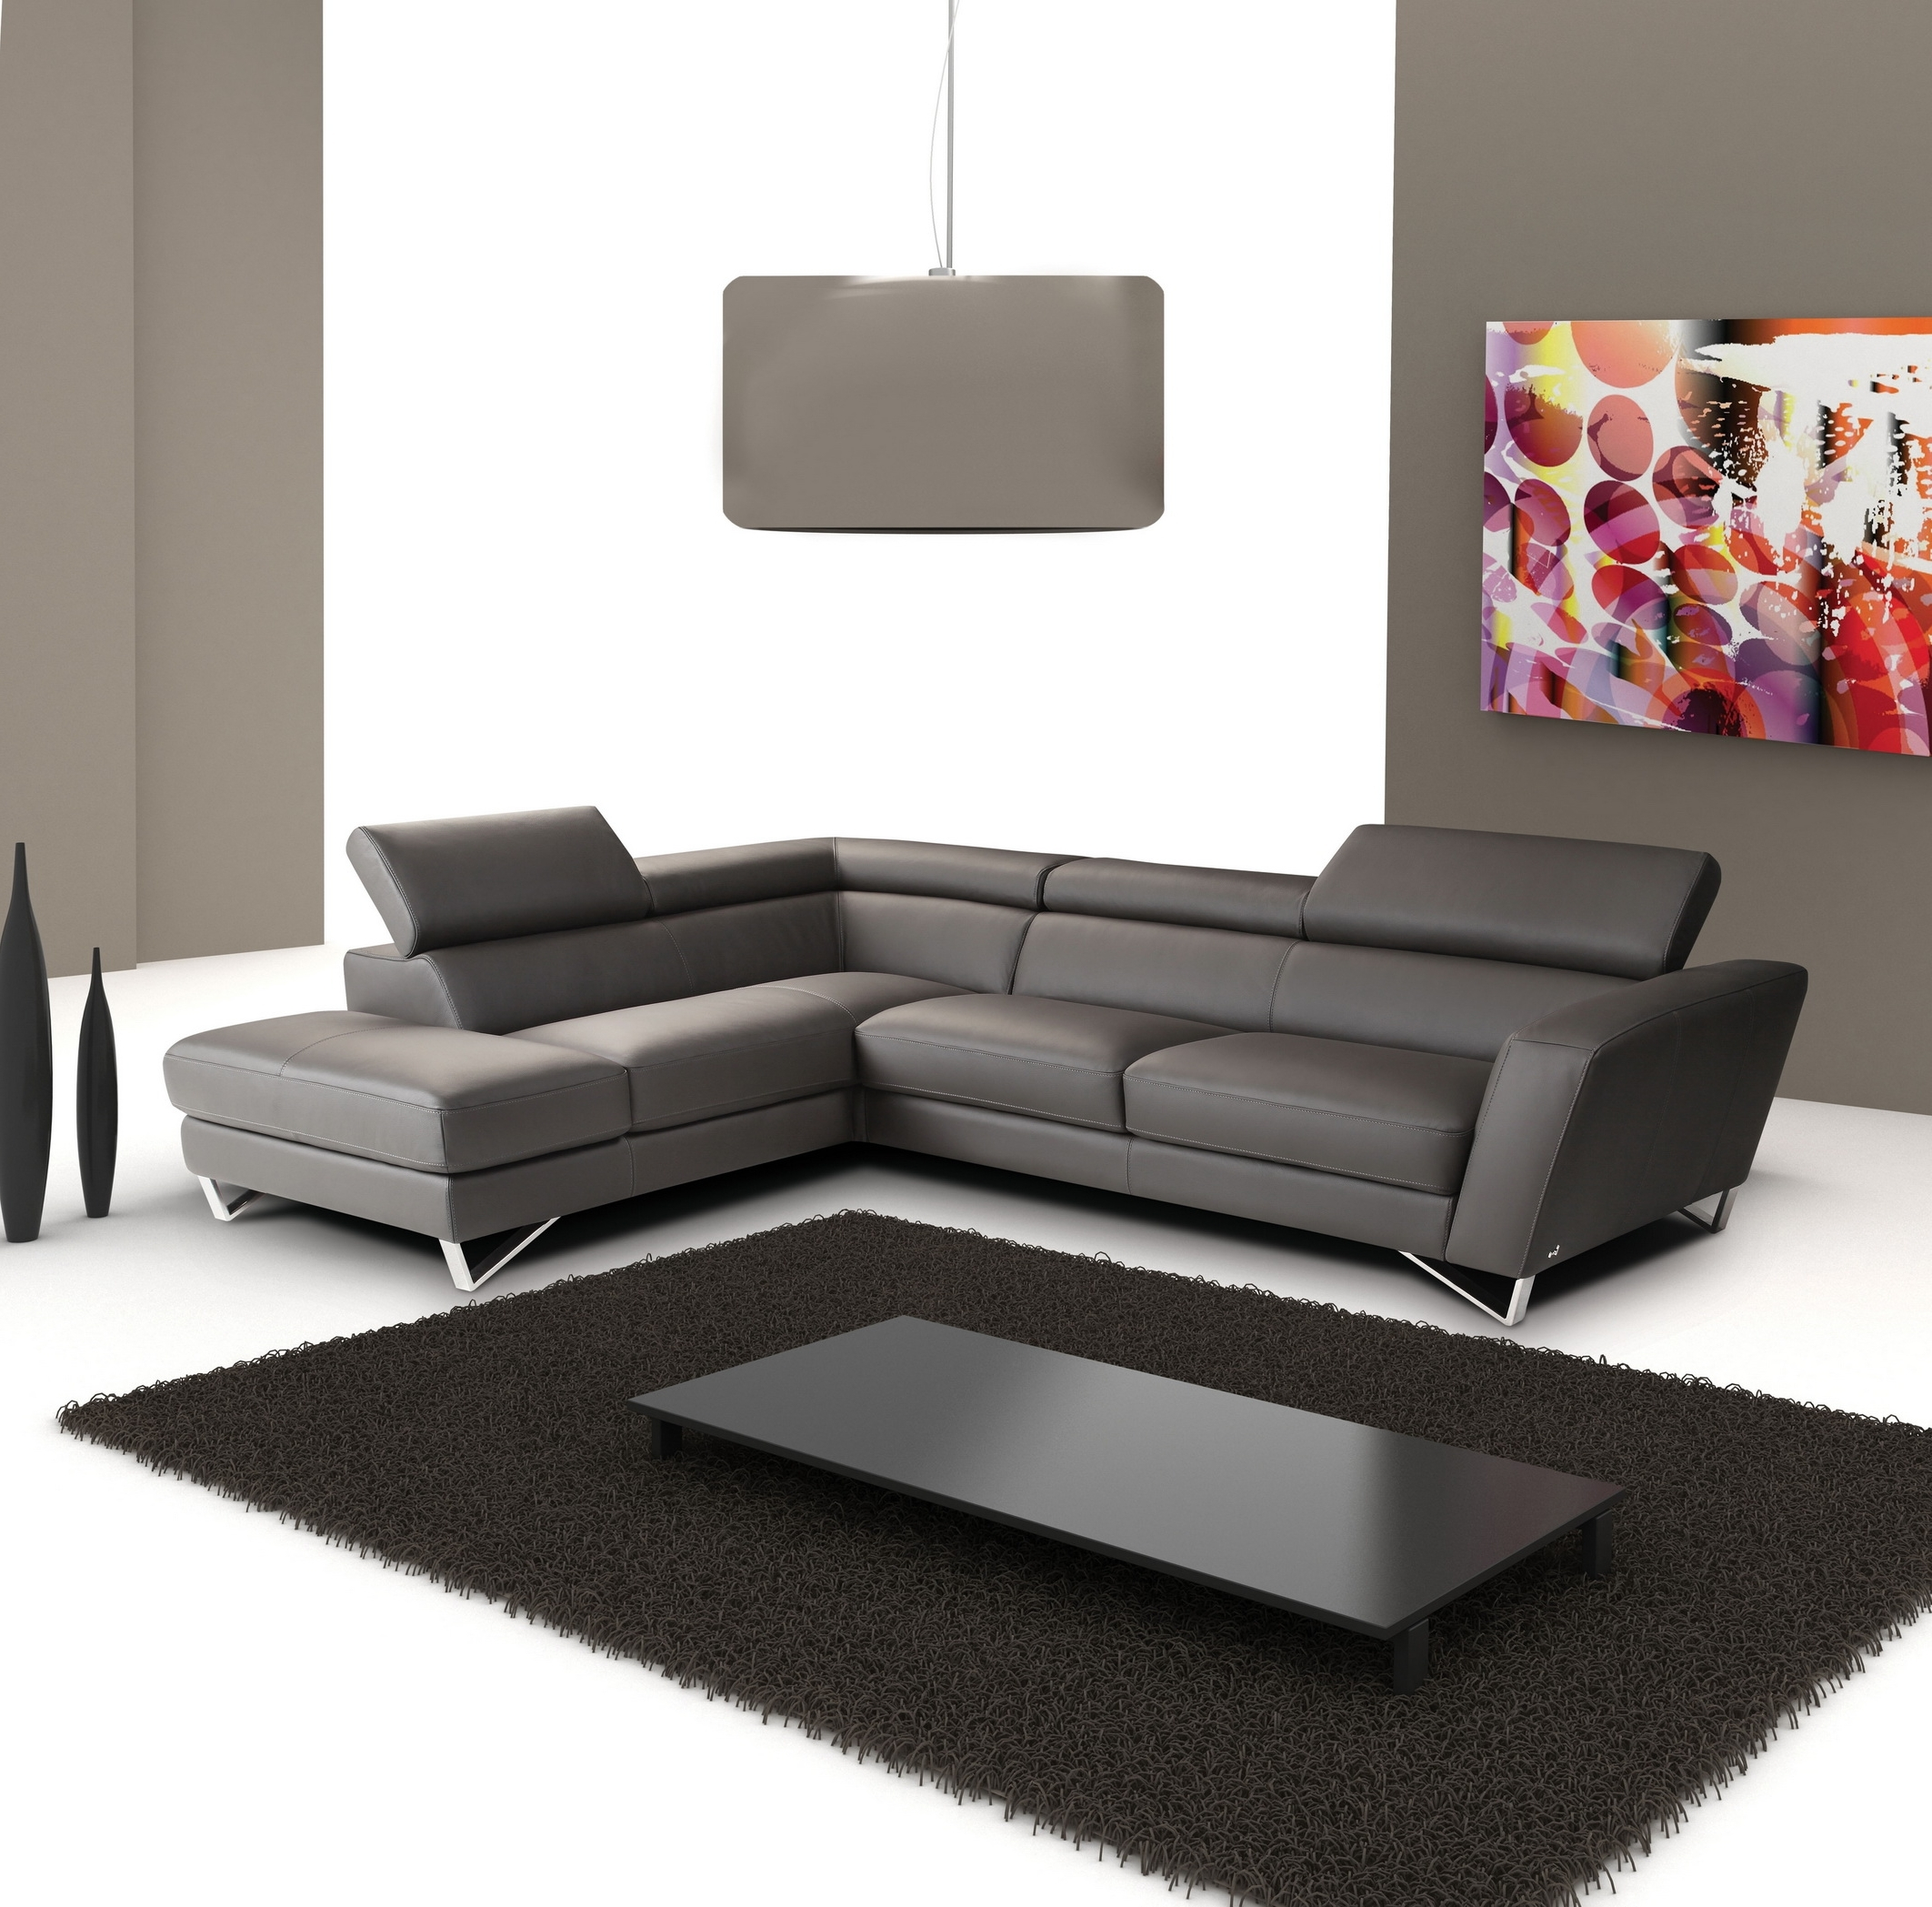 Sectional Sofas In Hyderabad With Regard To Widely Used Lovable Sectional L Shaped Leather Gray Sofa Under White Drum (View 13 of 20)